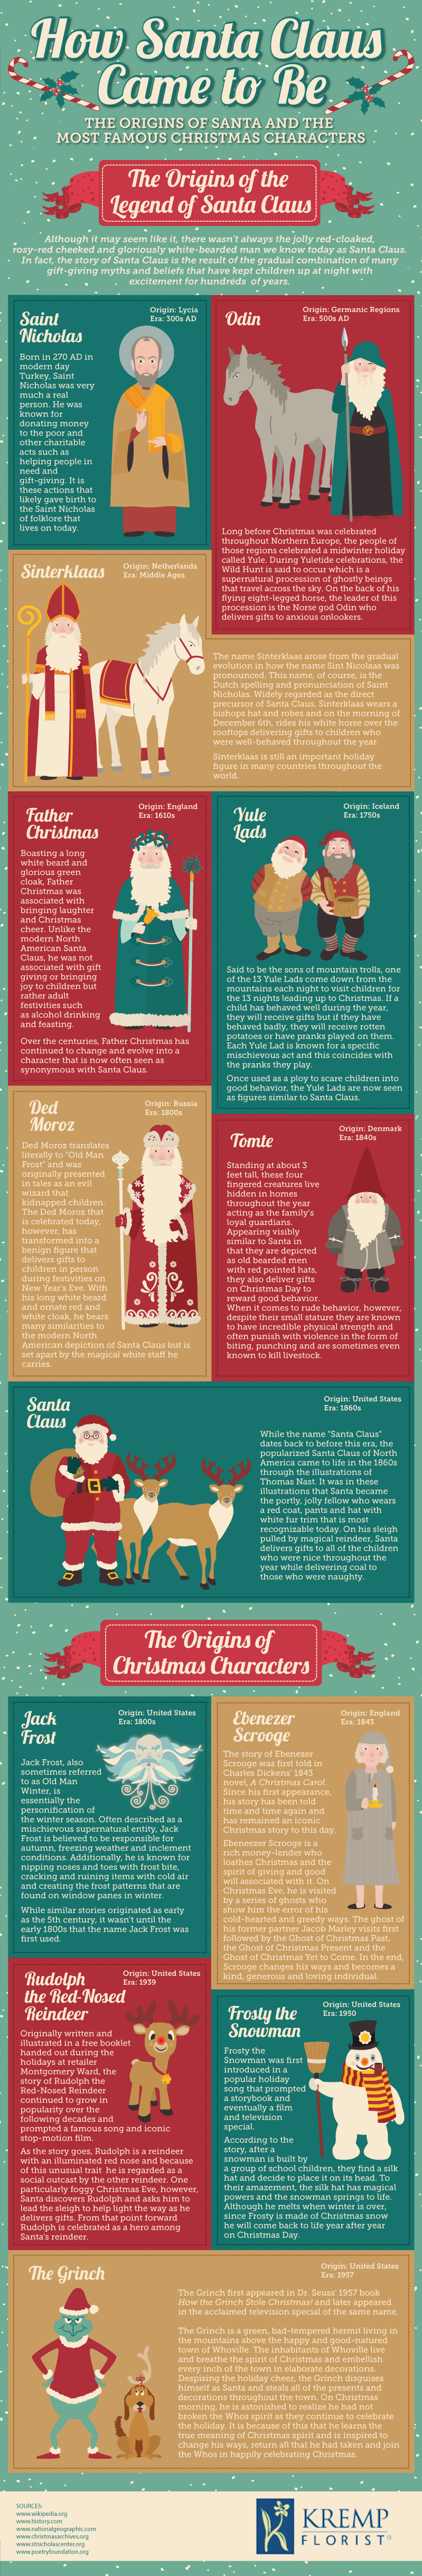 Infographic: How Santa Came to Be